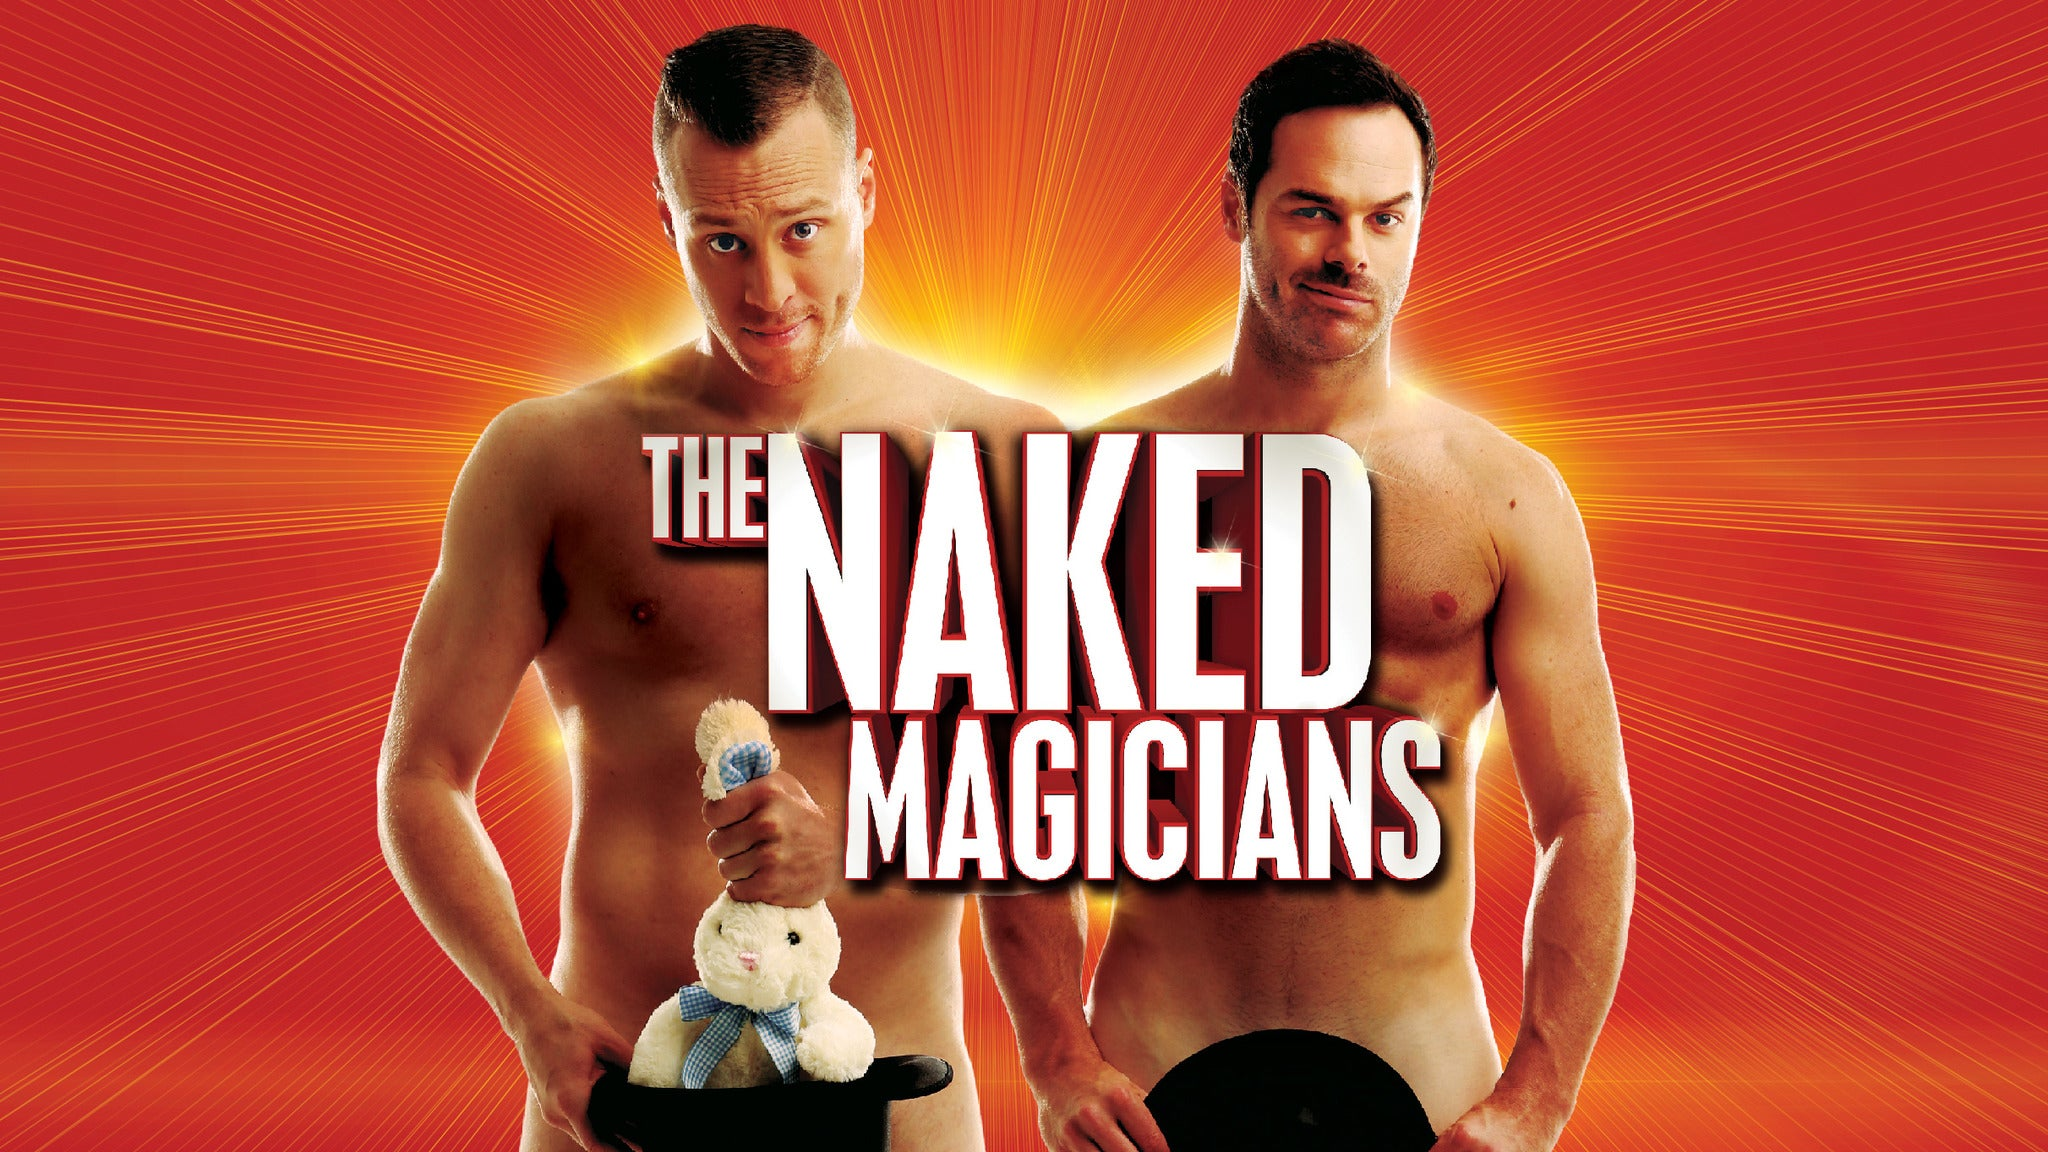 The Naked Magicians at Bergen Performing Arts Center